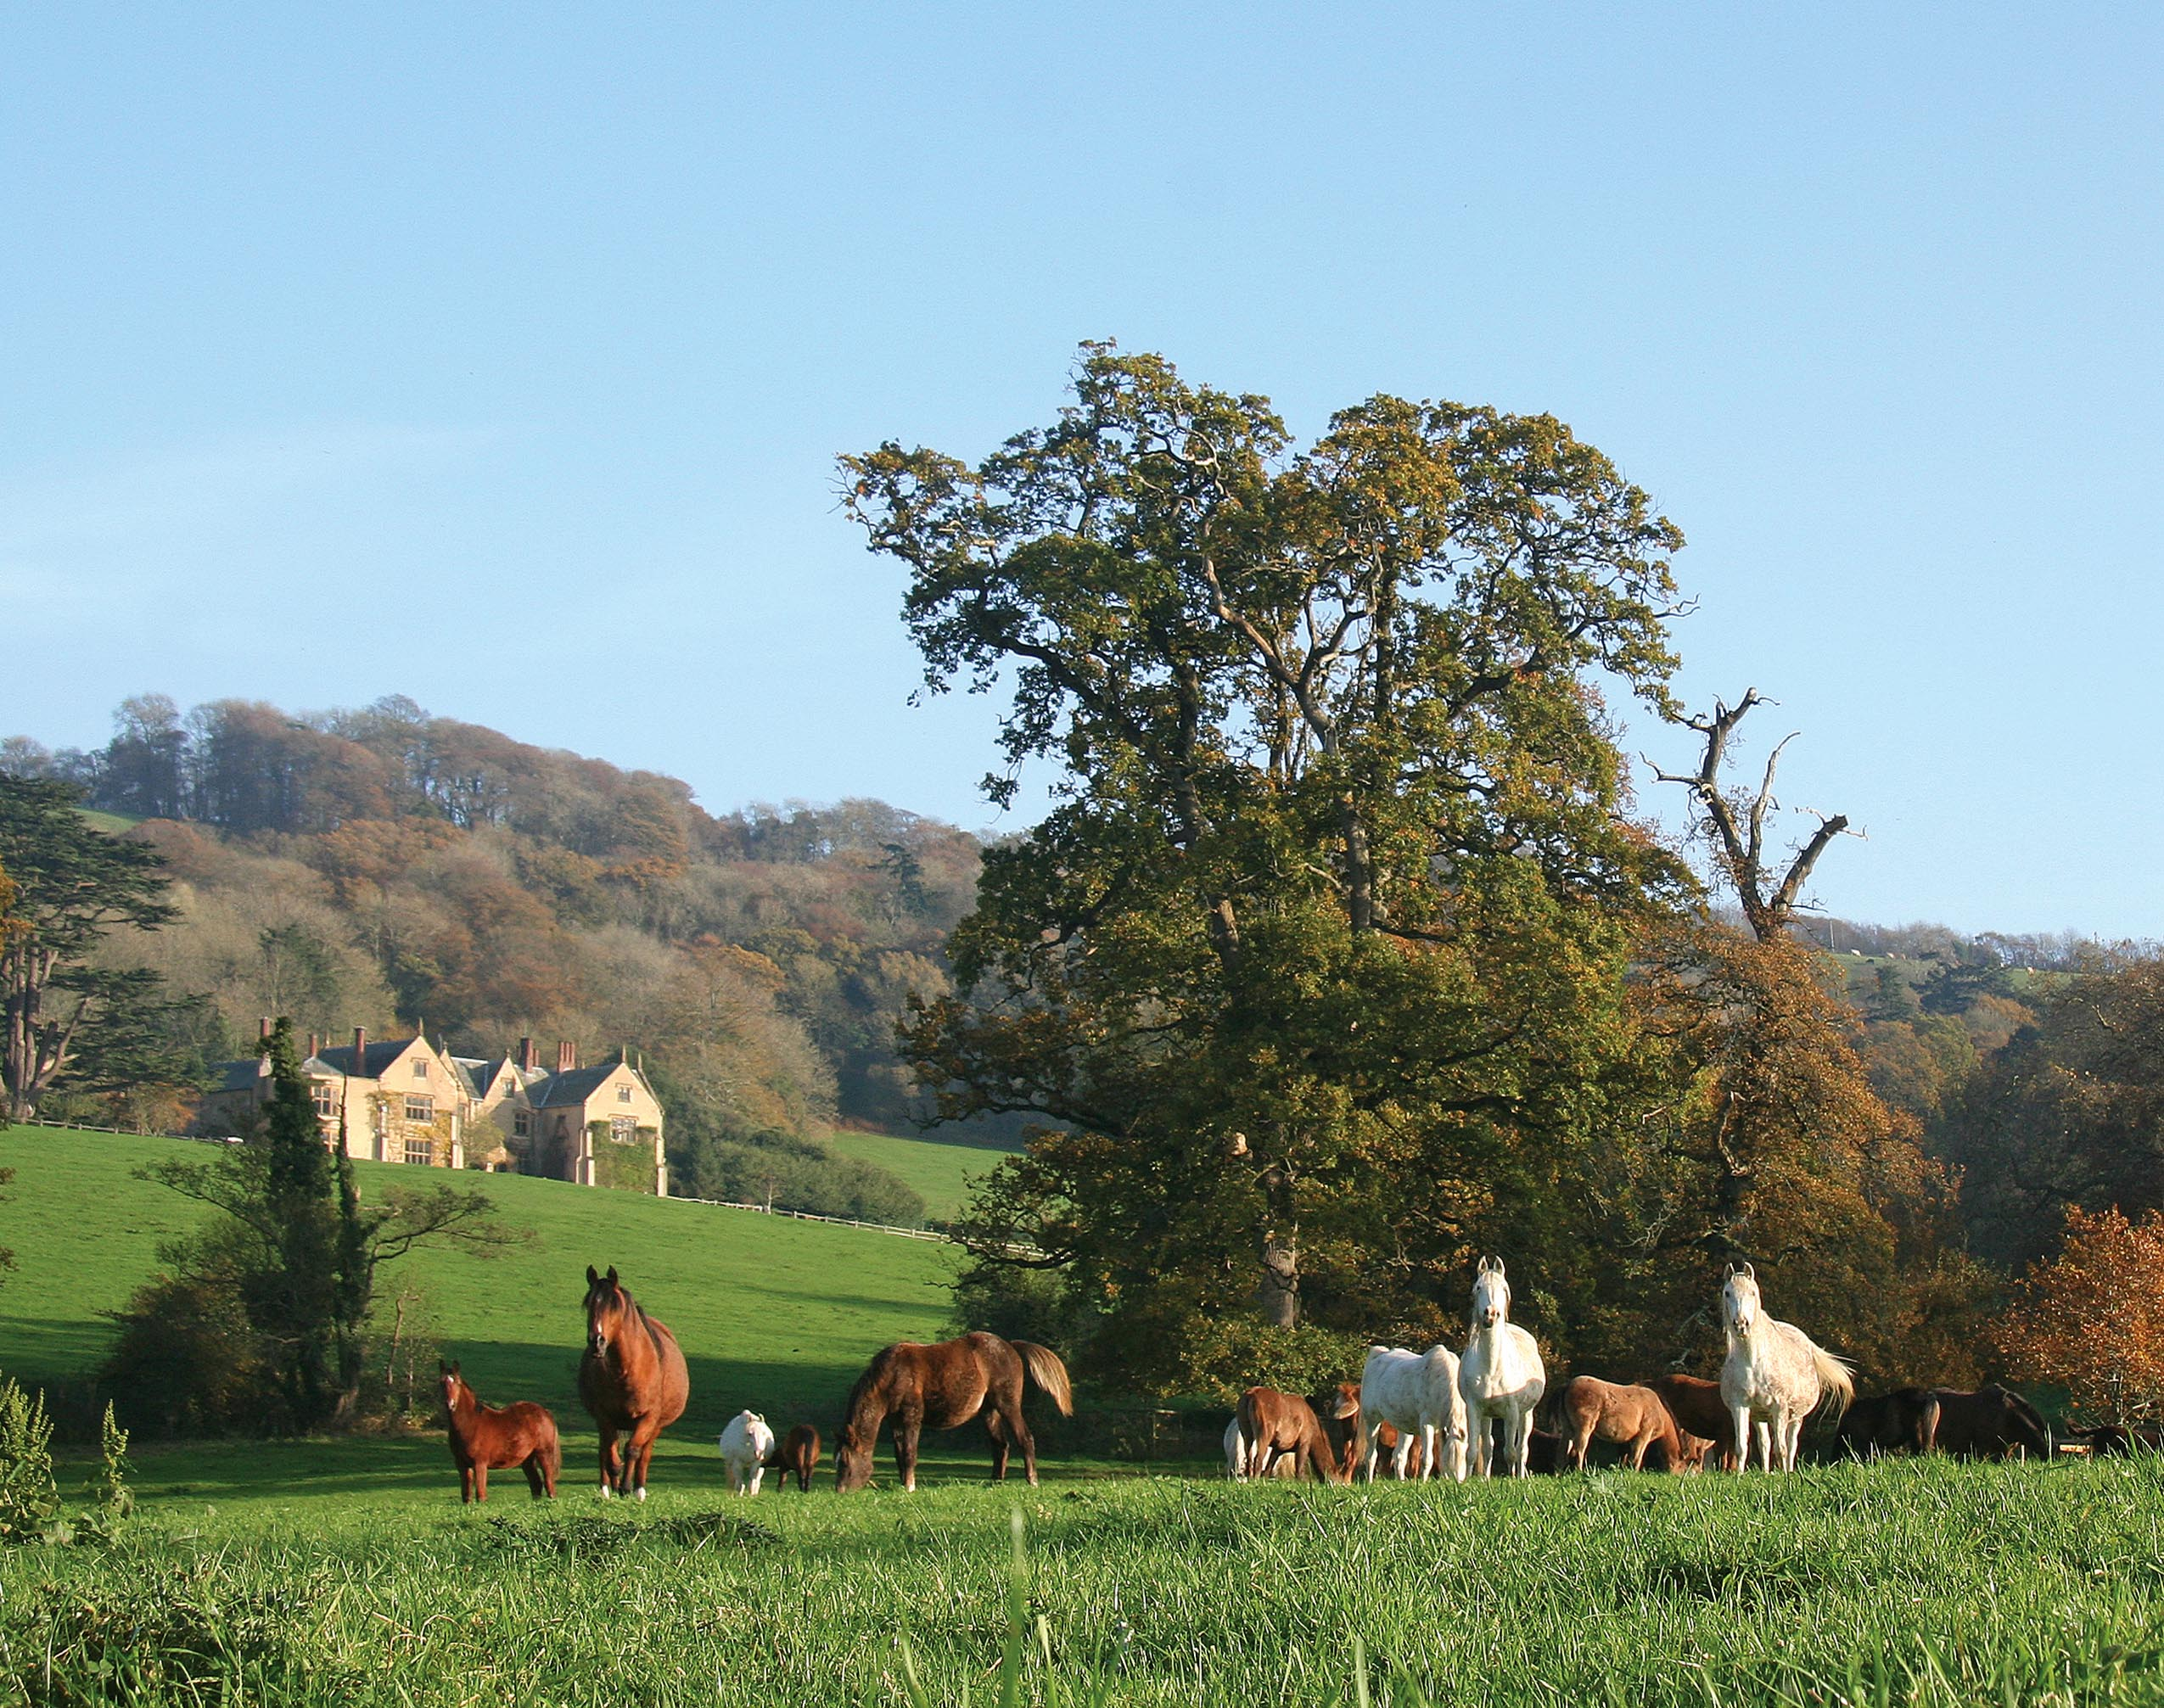 Raise a glass of Devonshire cider to an Indian Summer Autumn Escape